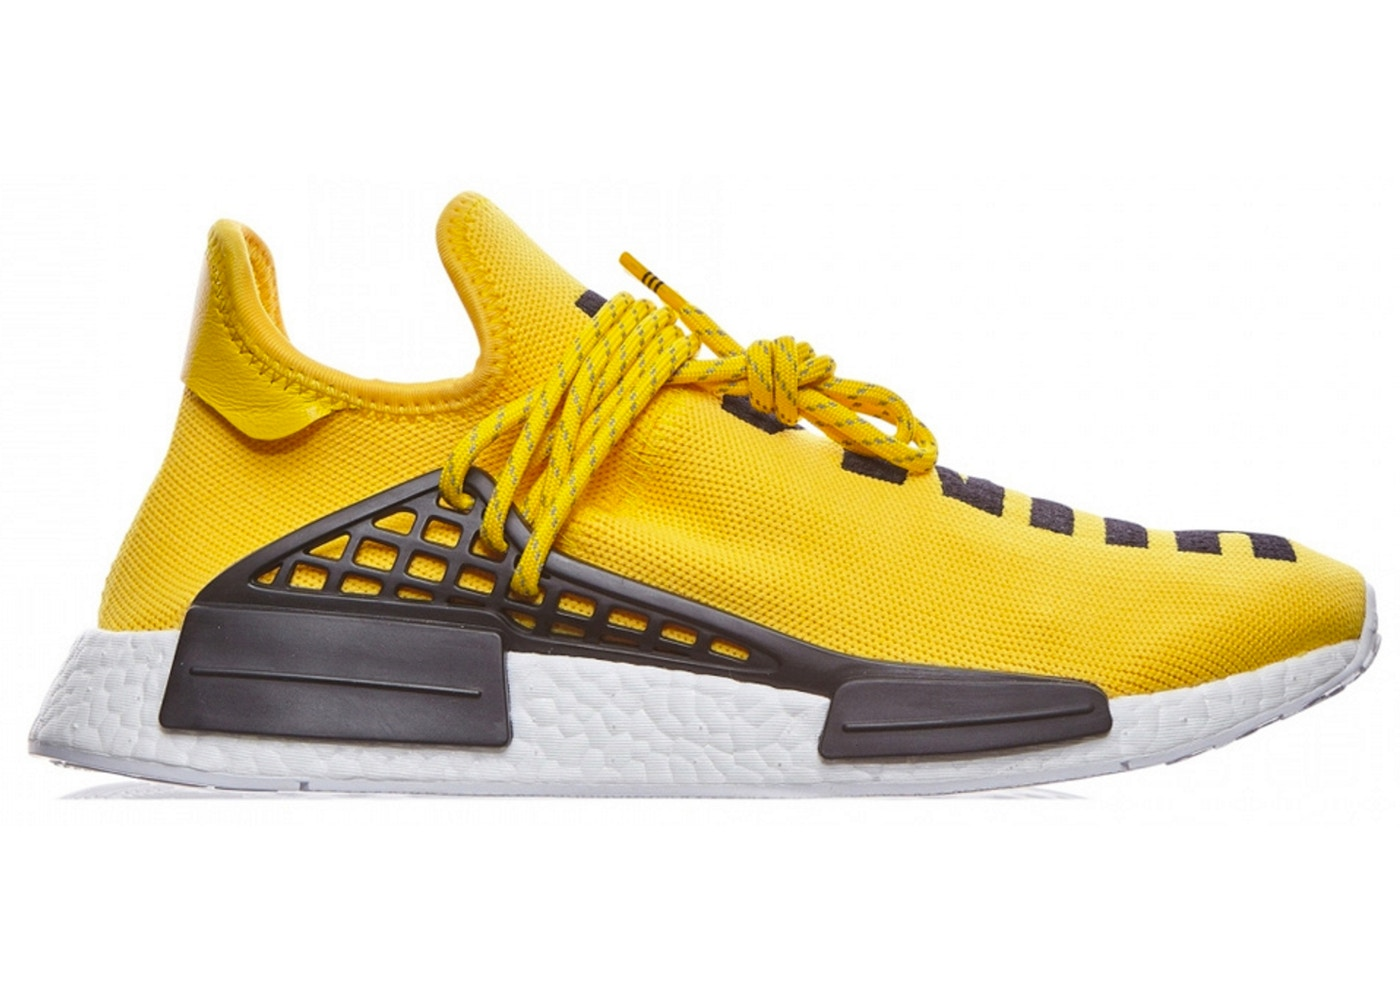 new product 7a6ef 58e9e Buy adidas NMD HU Shoes & Deadstock Sneakers